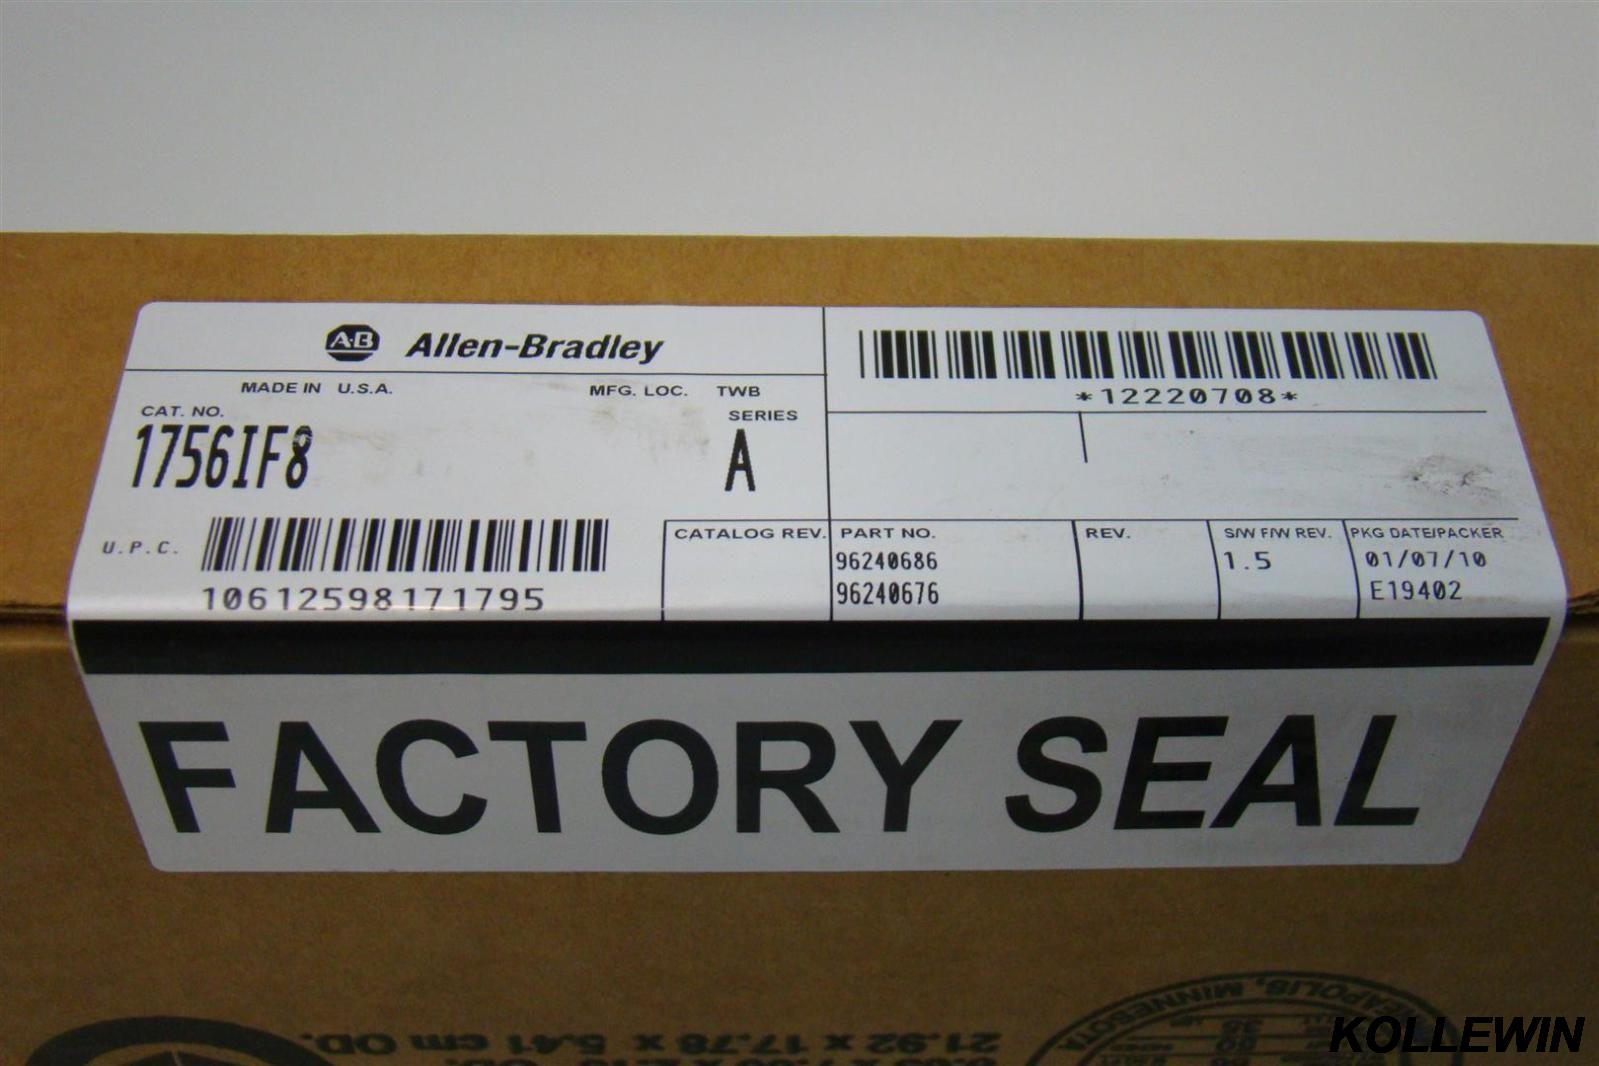 New Original Allen Bradley 1756-IF8 ControlLogix 8 Point A/I Module 1756-IF8 PLC module 1756 IF8 factory sealed 1 year warranty allen bradley 1756 of8 1756of8 controllogix 8 pt a o i or v module new and original 100% have in stock free shipping